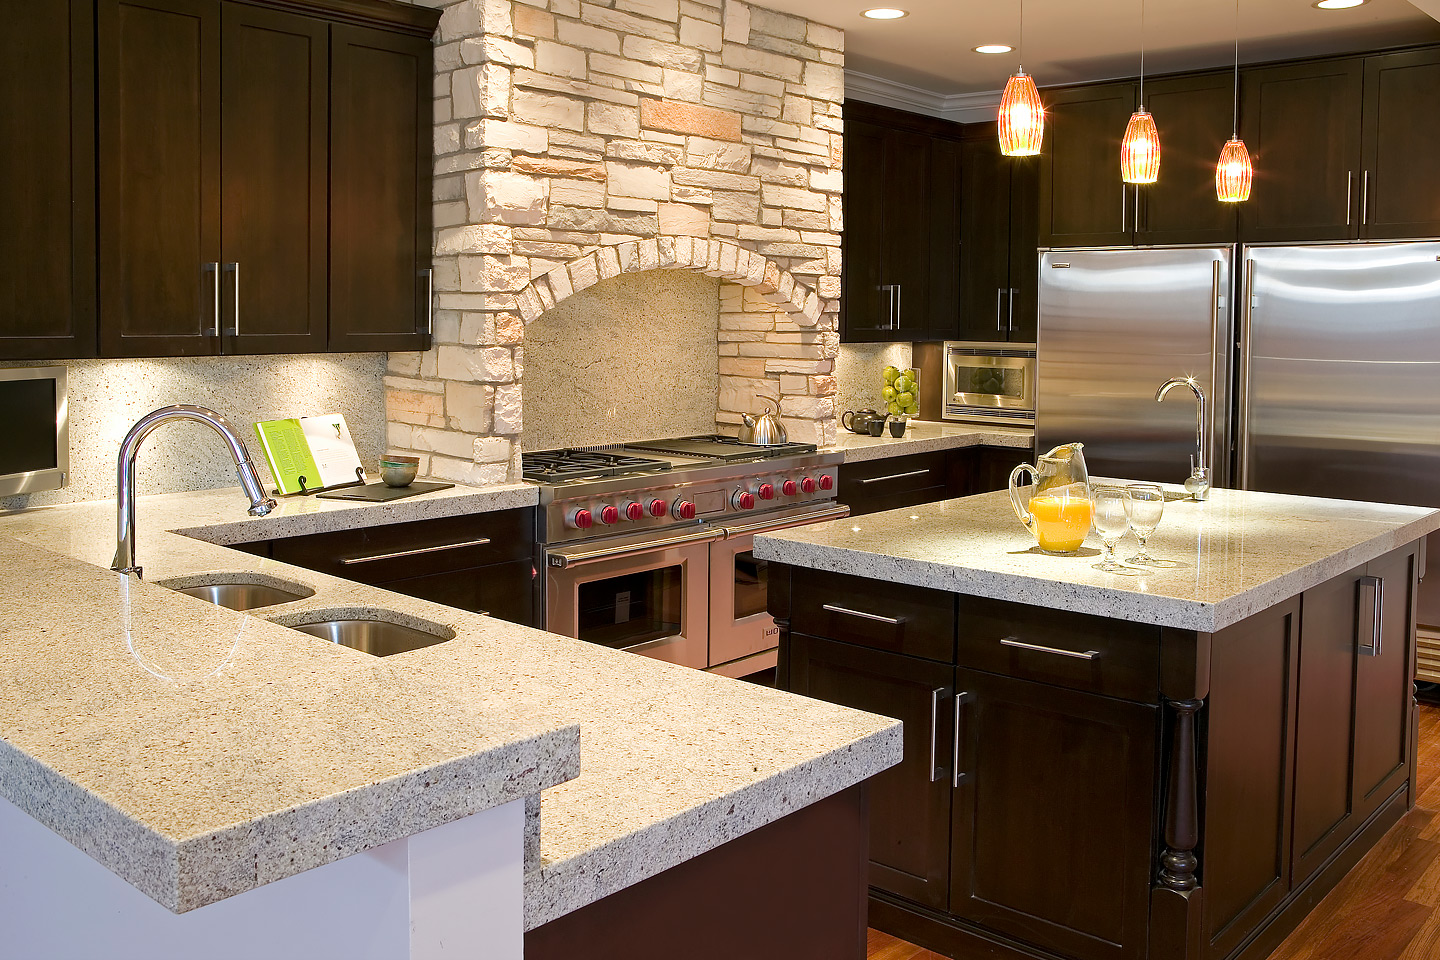 kitchen by Samara Development Deerfield Illinois